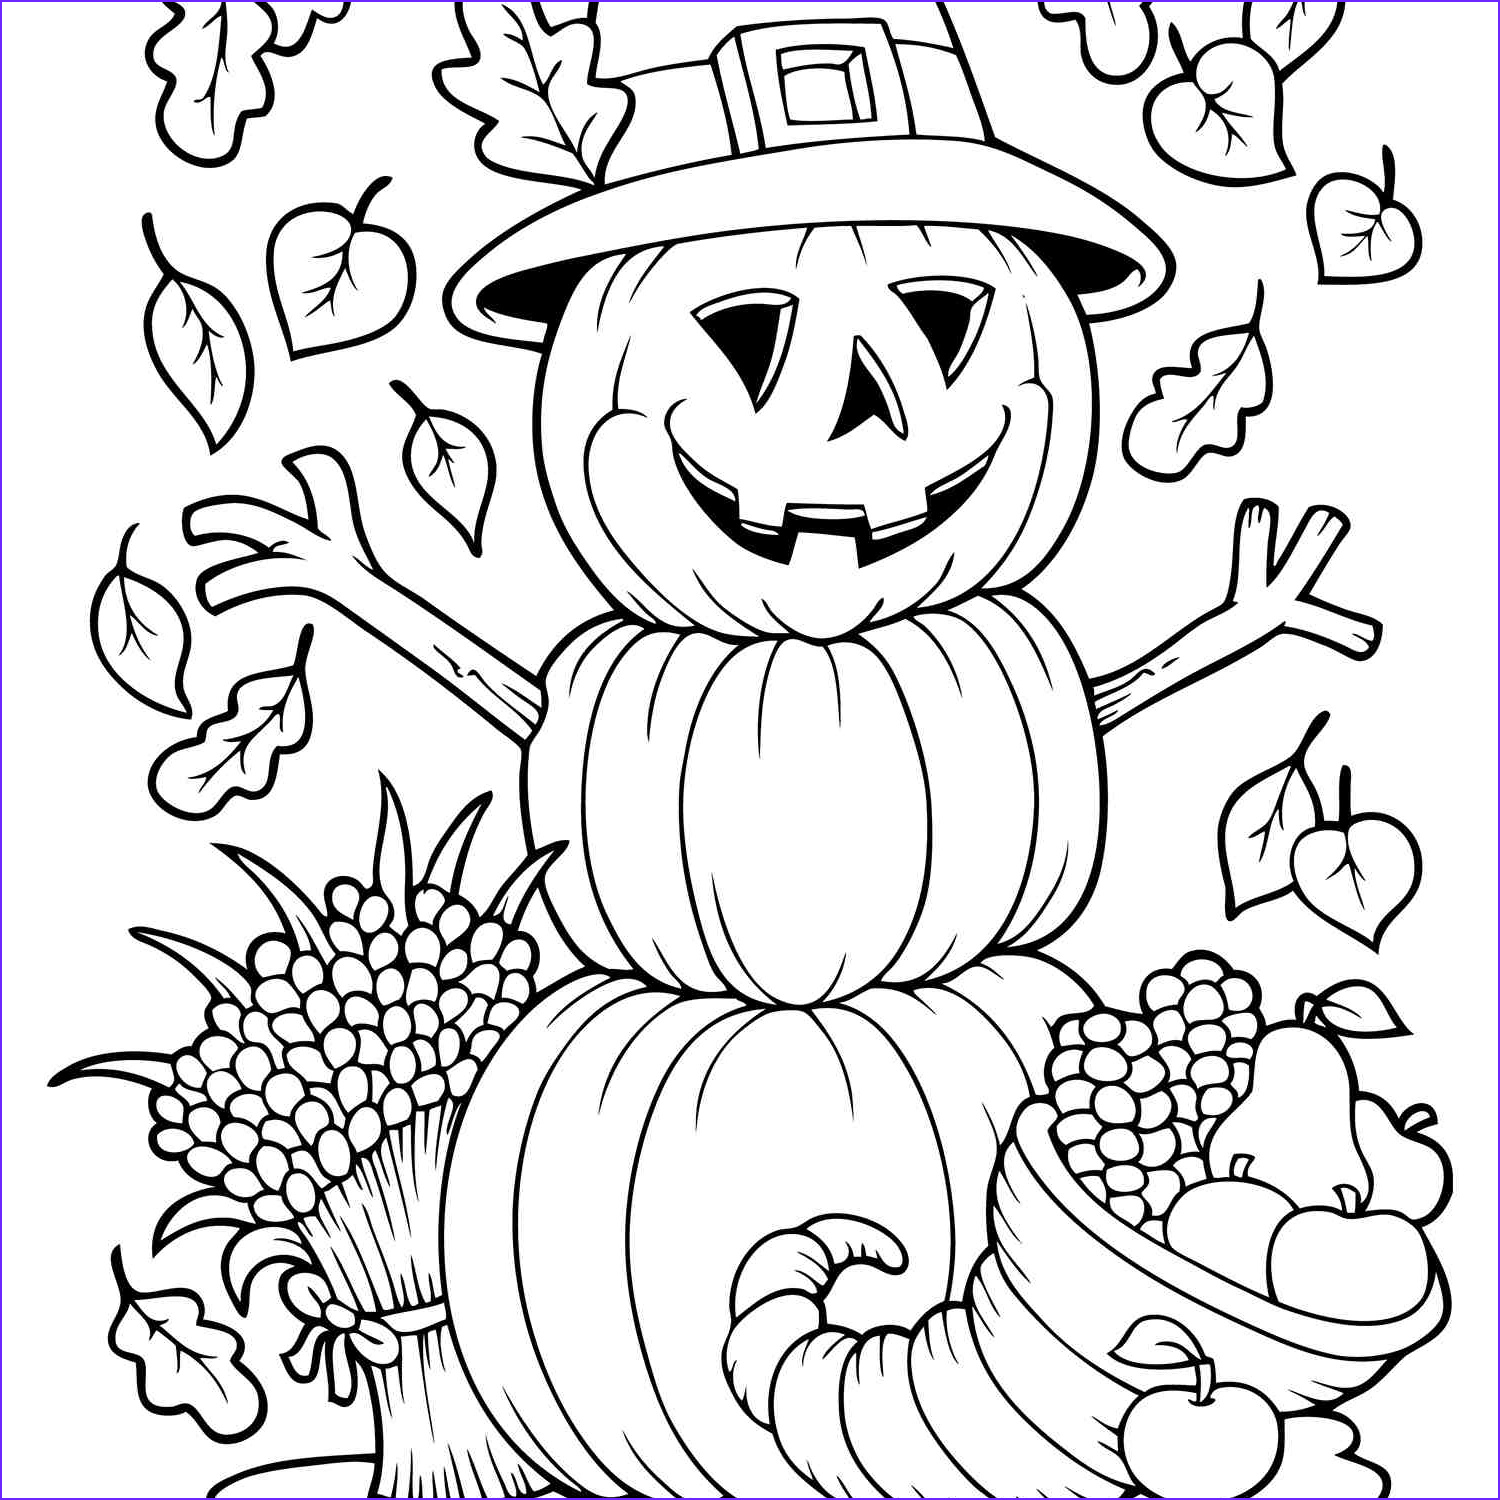 Autumn Coloring Sheets Unique Photography Free Autumn and Fall Coloring Pages